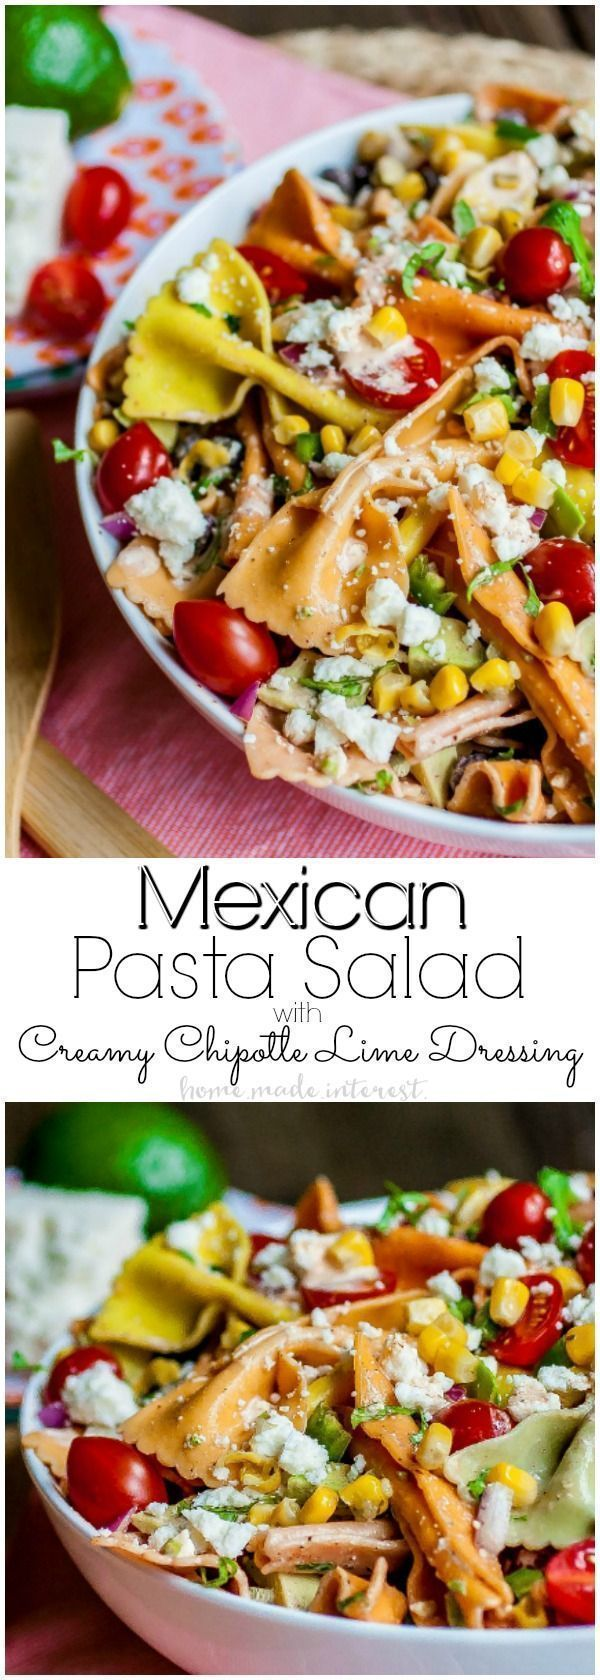 Mexican Pasta Salad | Mutli-colored pasta and bold southwest flavors make this easy Mexican Pasta Salad an awesome pasta salad recipe for Cinco de Mayo. If you're looking for Cinco de Mayo recipes you can make ahead of time and serve at your Cinco de Mayo